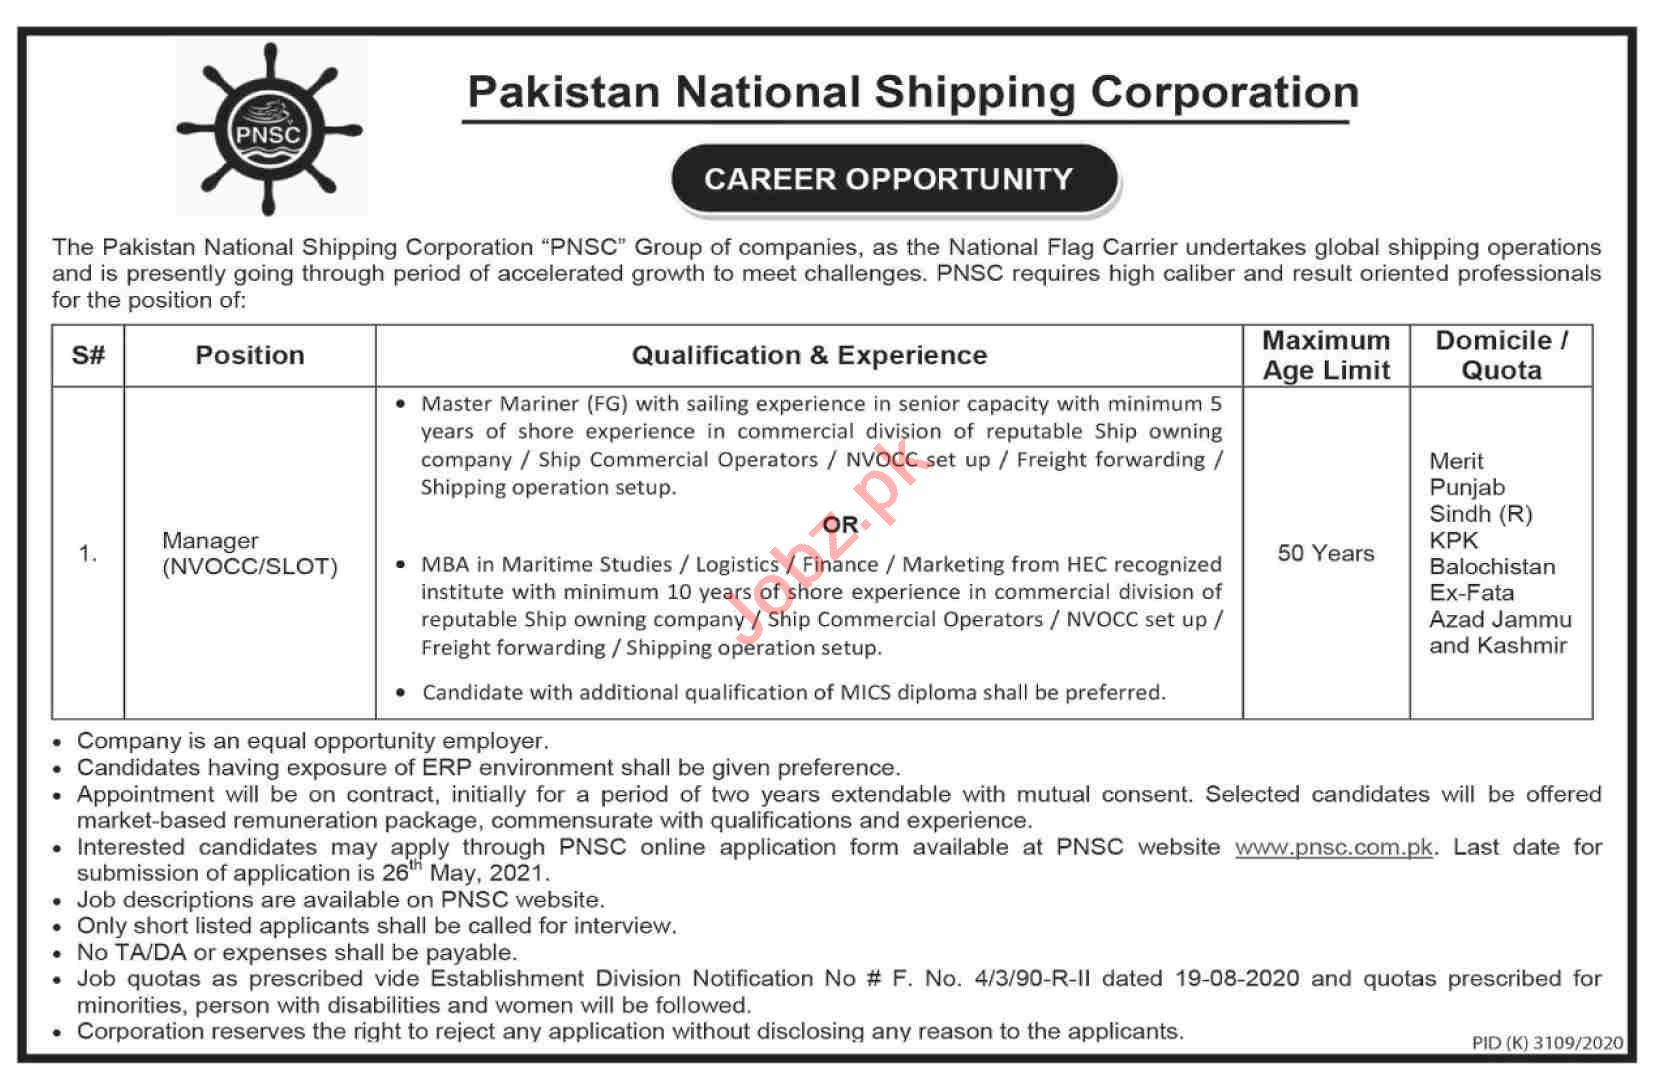 Pakistan National Shipping Corporation Jobs 2021 for Manager